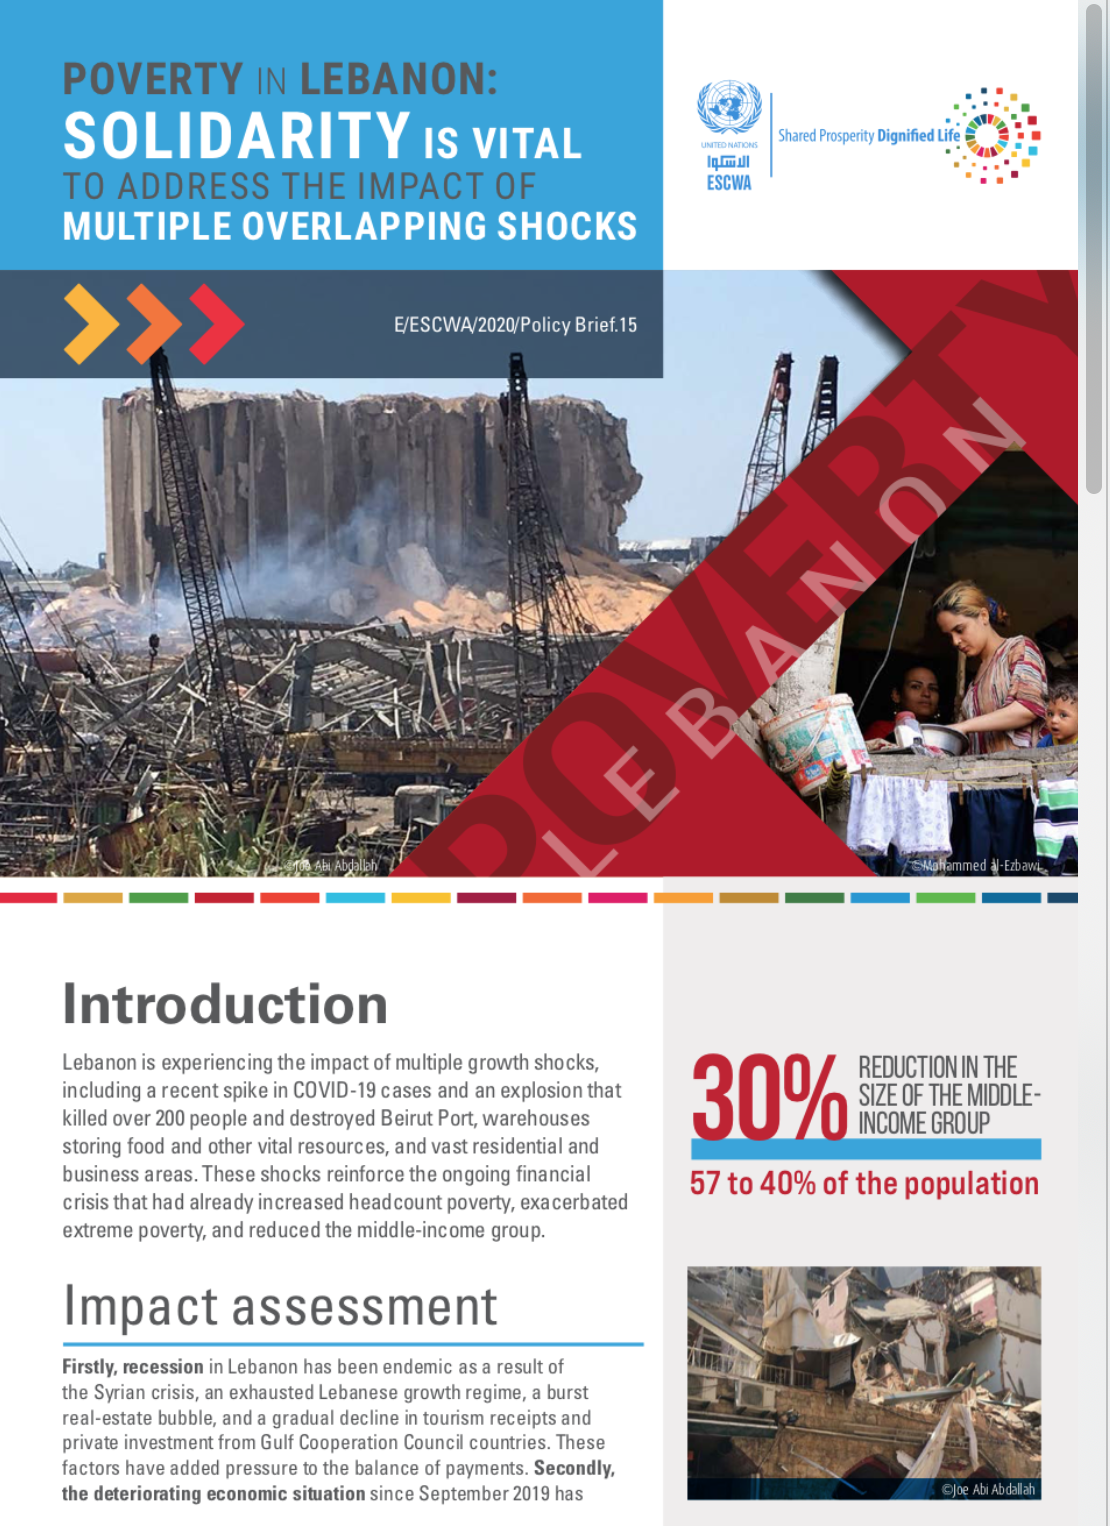 Poverty in Lebanon: Solidarity is vital to address the impact of multiple overlapping shocks